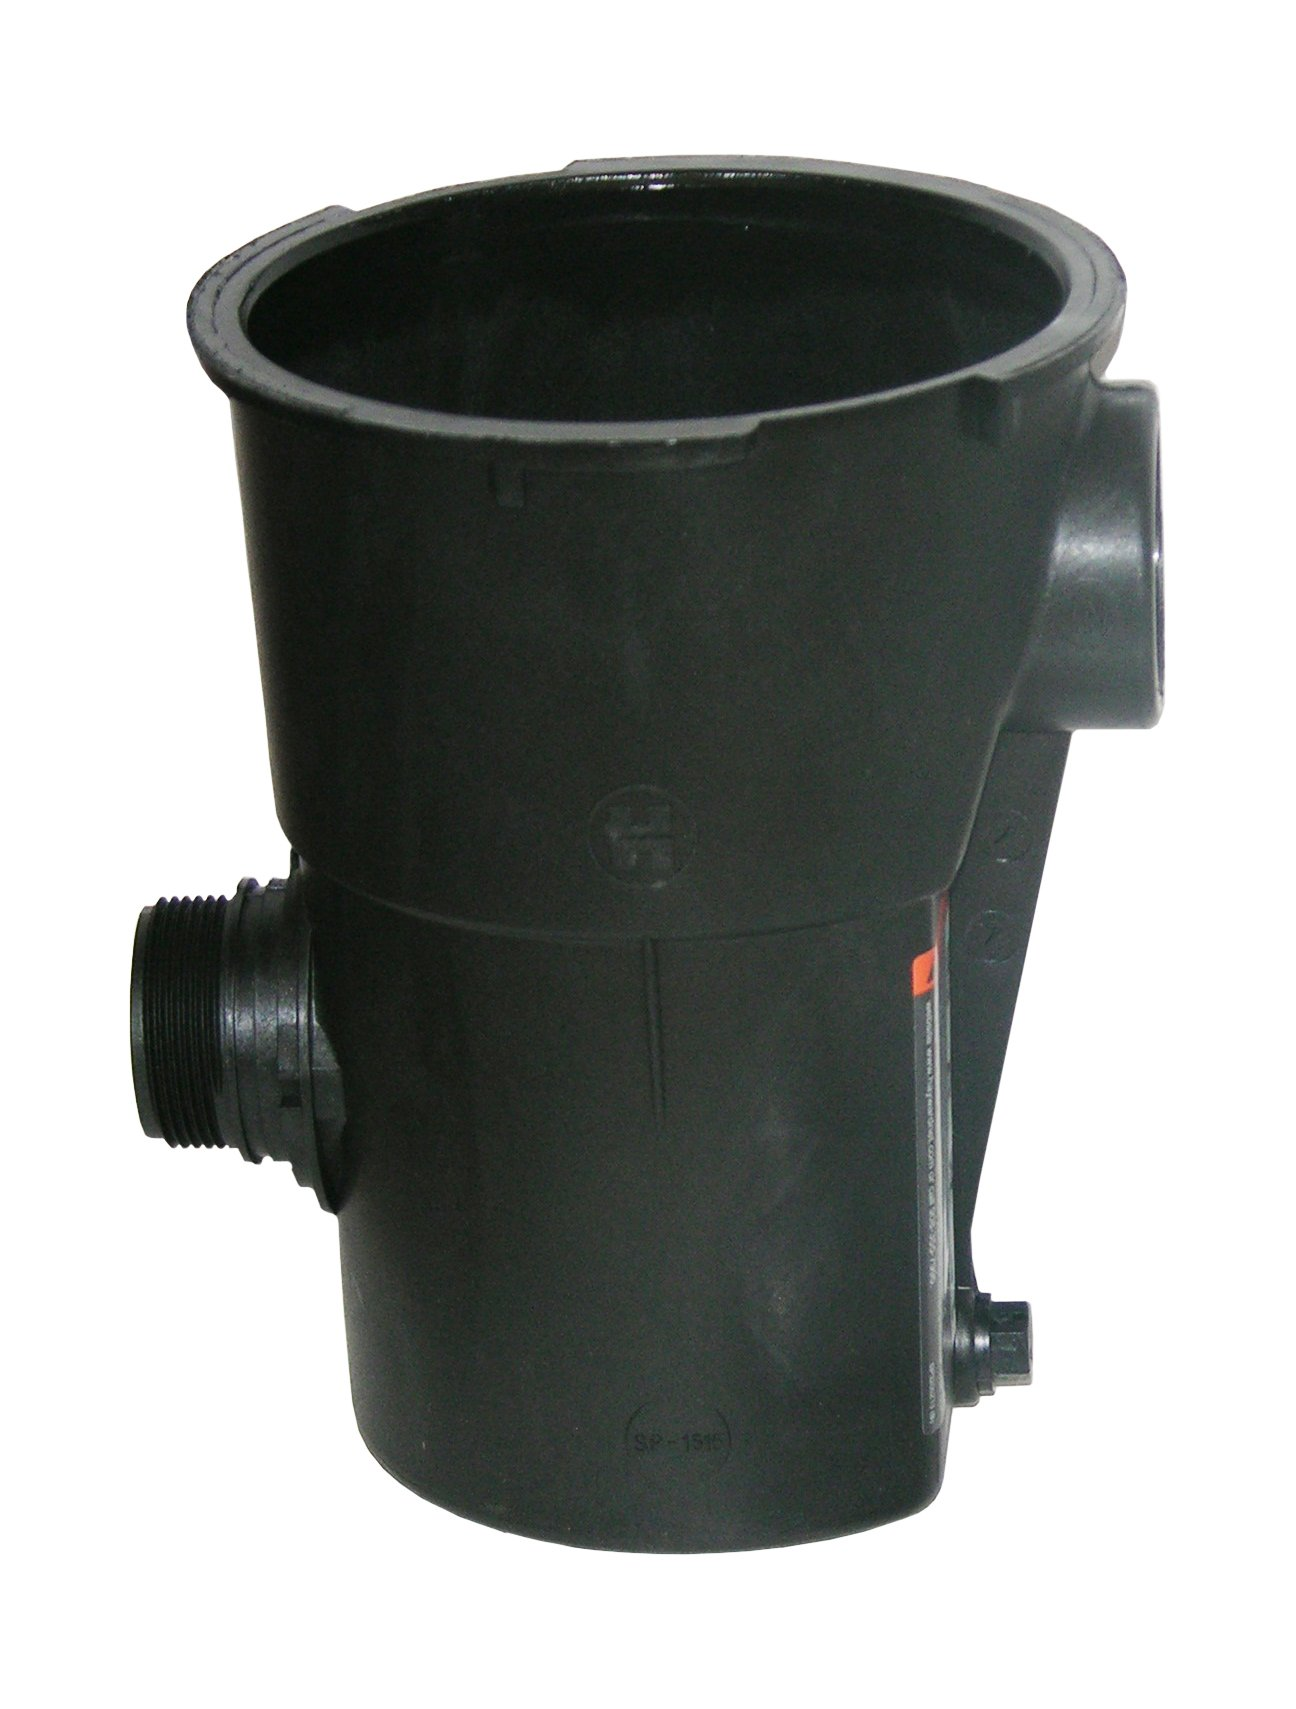 Hayward SPX1500CAP Strainer Housing with Basket Replacement for Select Hayward Pumps and Filters by Hayward (Image #1)